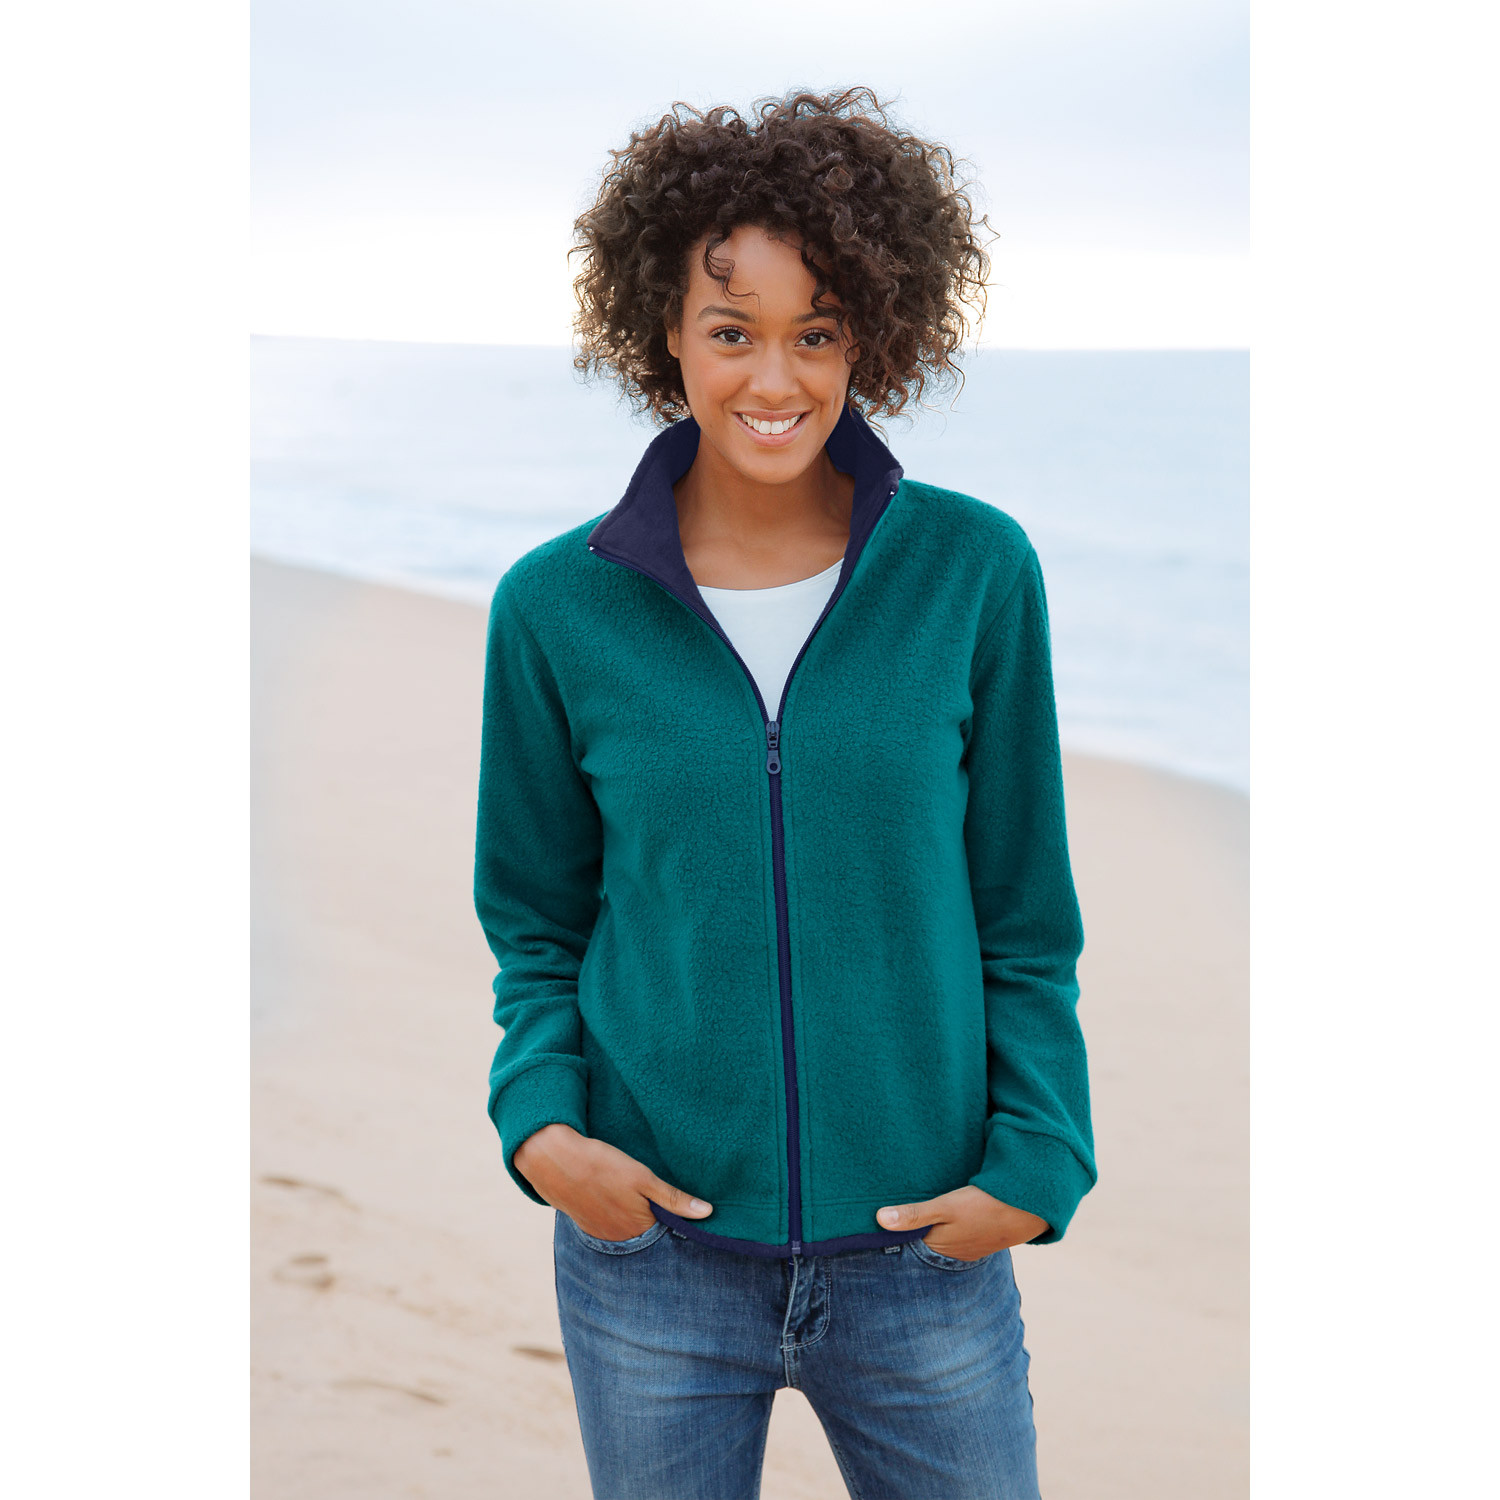 Fleece-Jacke, rostorange/anthrazit